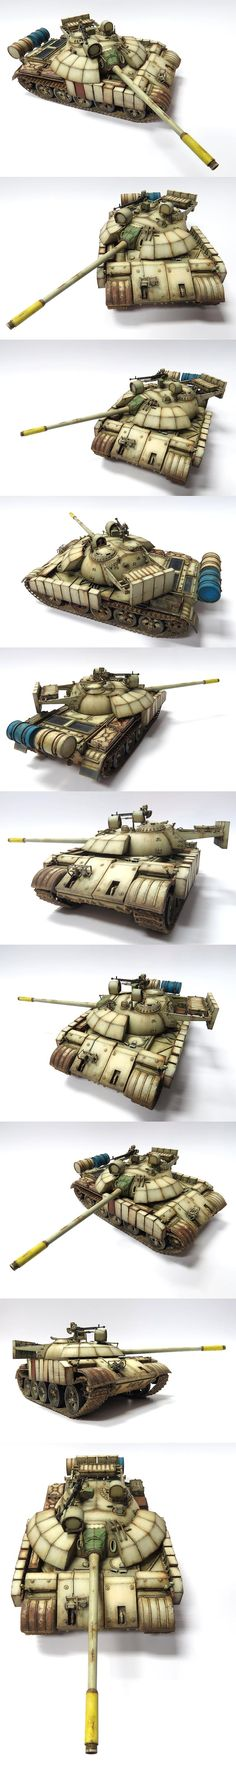 T55 Enigma Model by ***NEOFAUX*** M STUDIO Artist since 2009 Model kit: TAMIYA Scale: 1/35